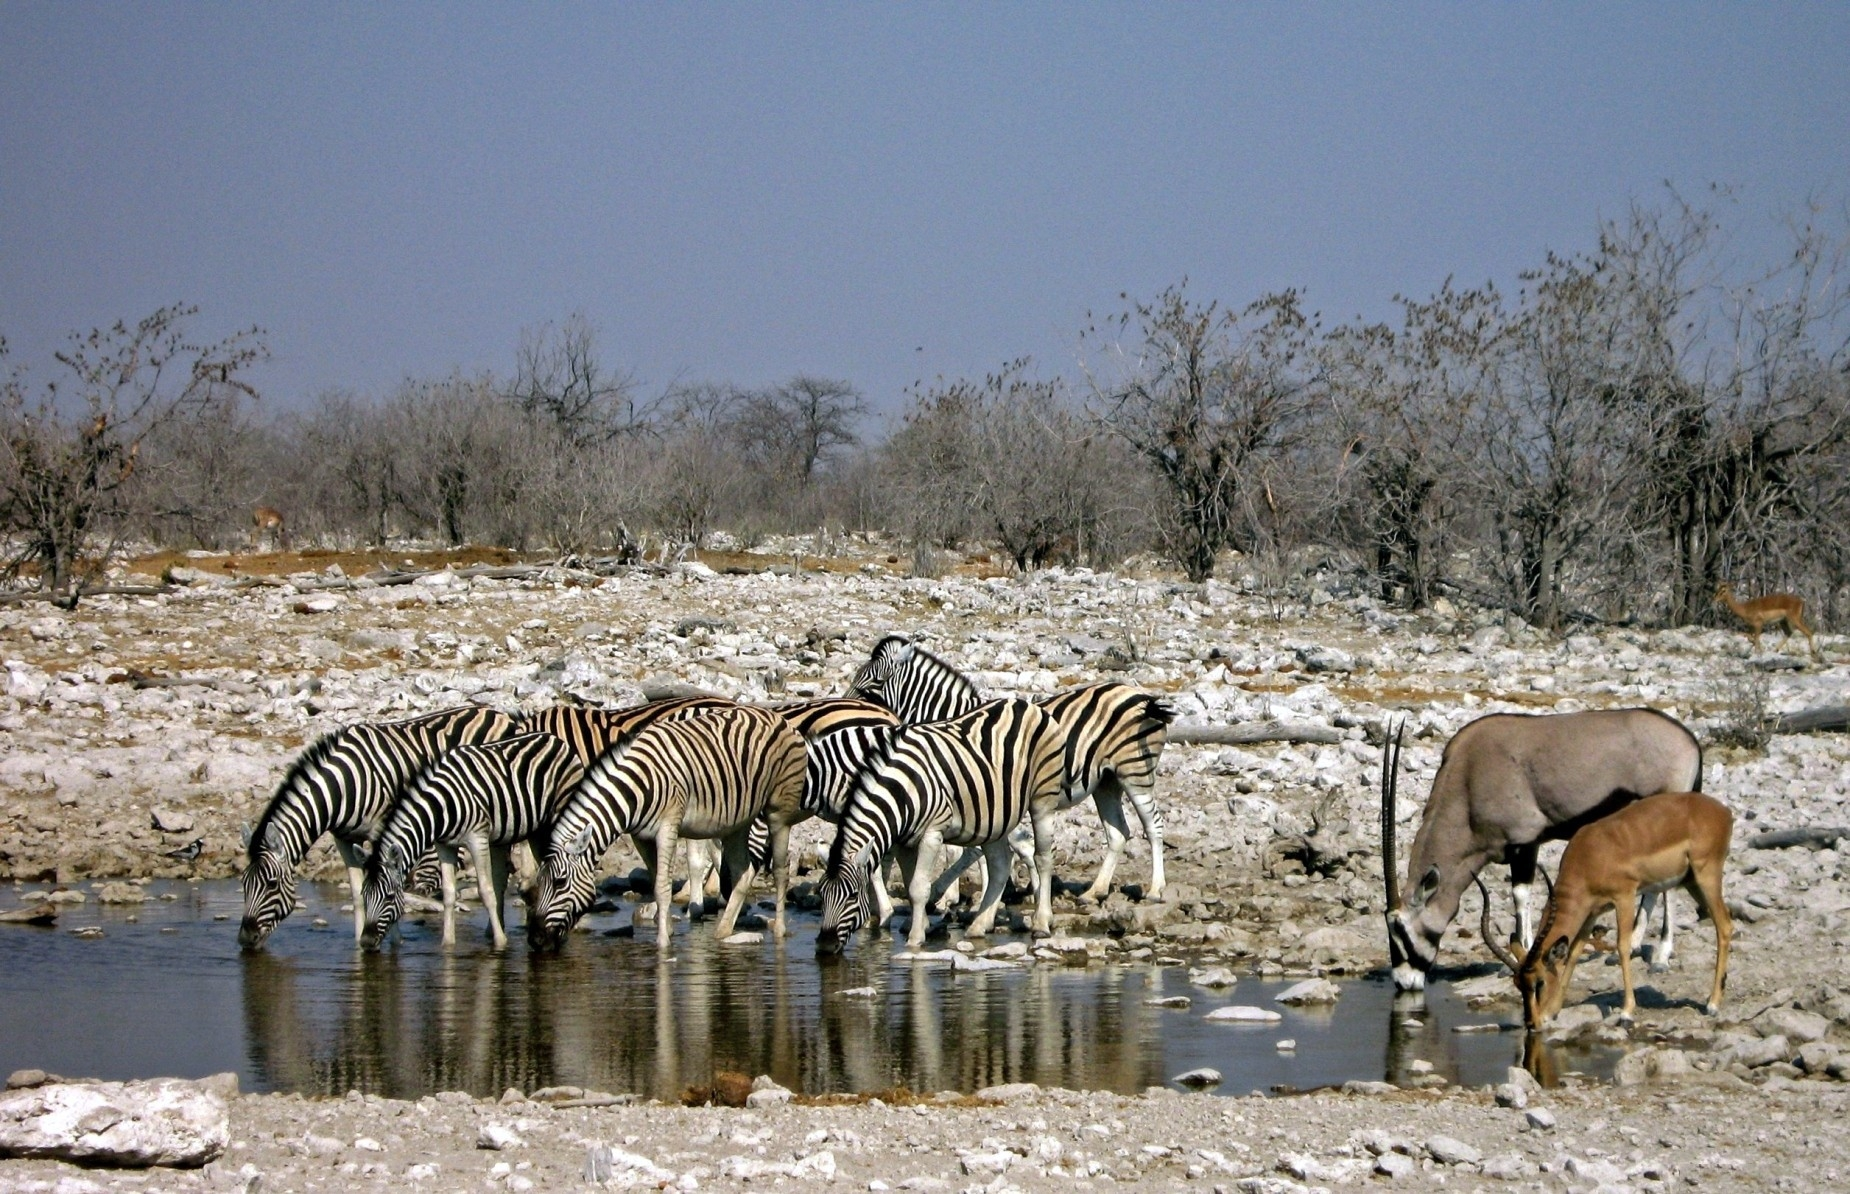 water animals zebras antelope drinking africa_guild species